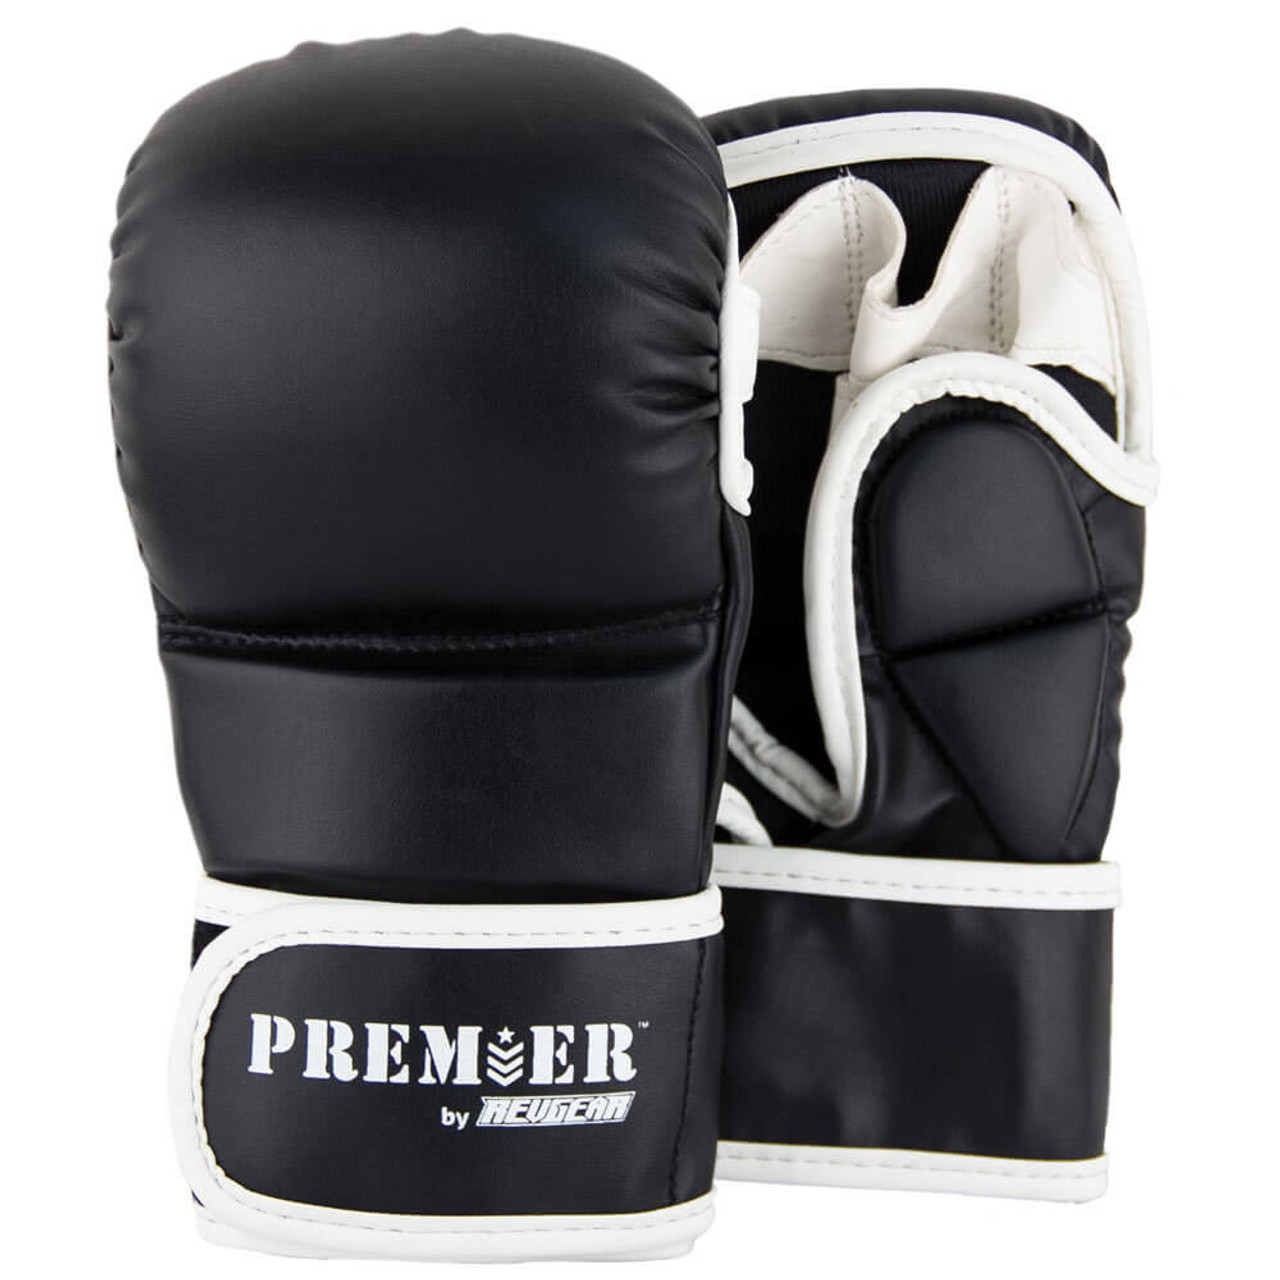 Premier MMA Training Gloves